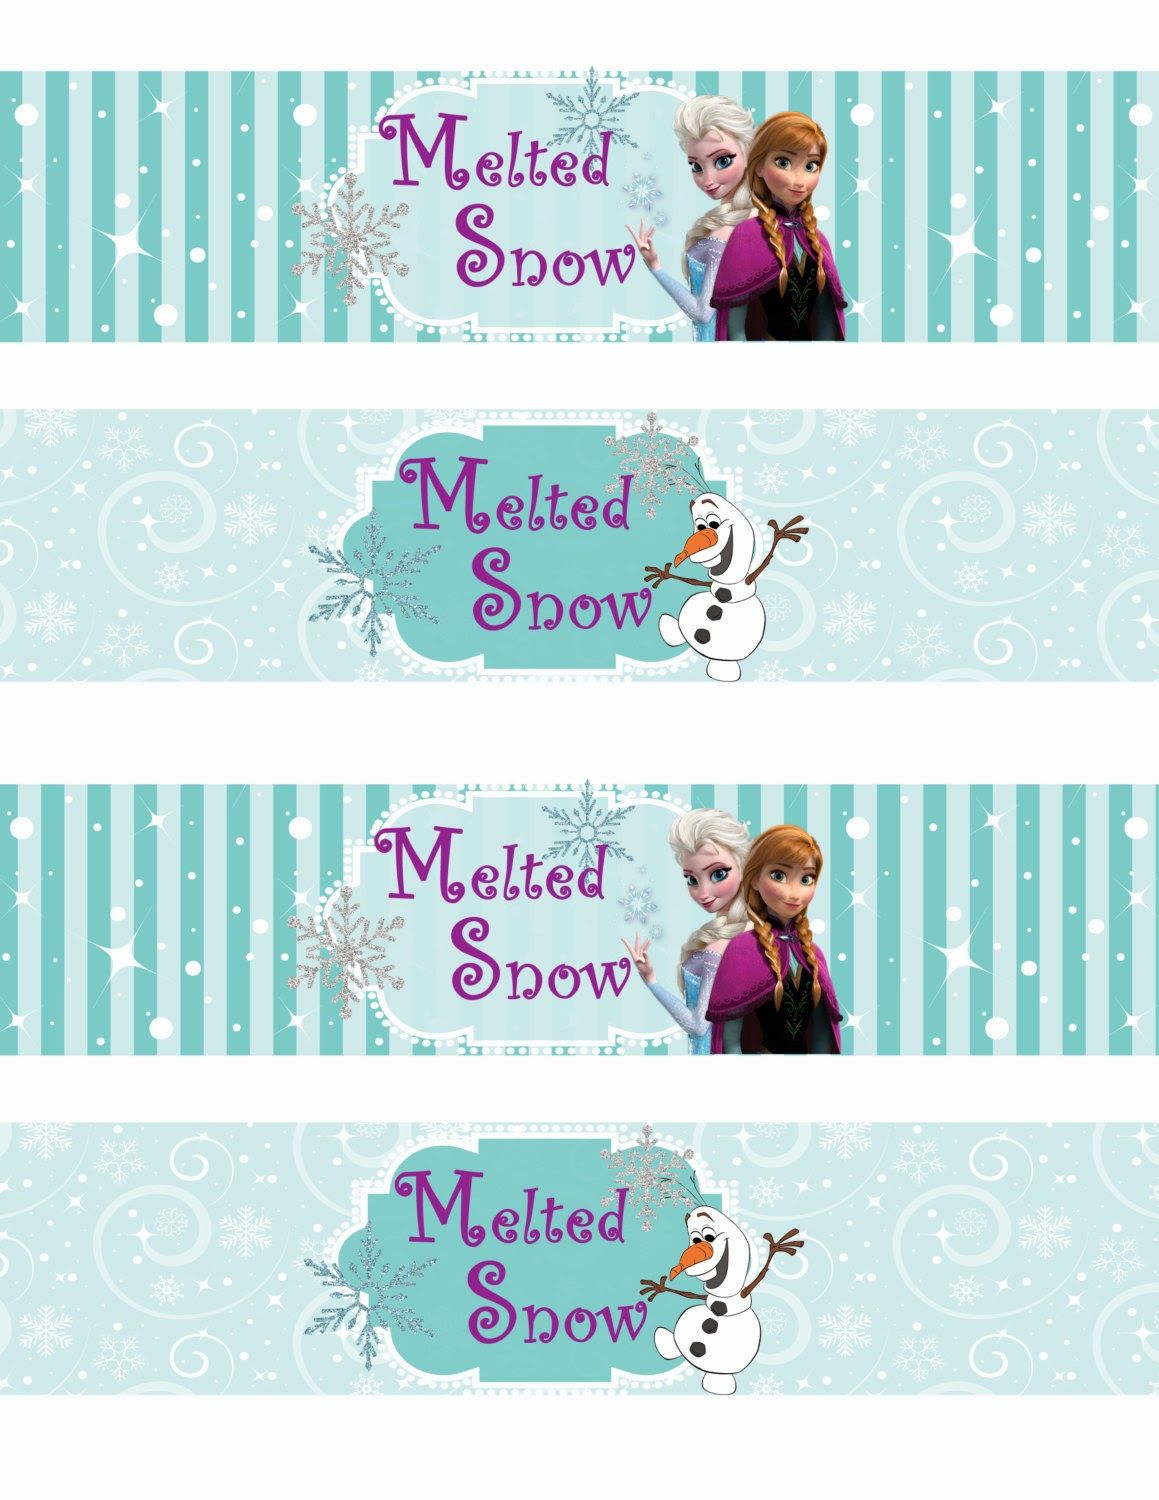 image about Frozen Free Printable known as No cost Printable Frozen Labels. - Is it for Get-togethers? Is it